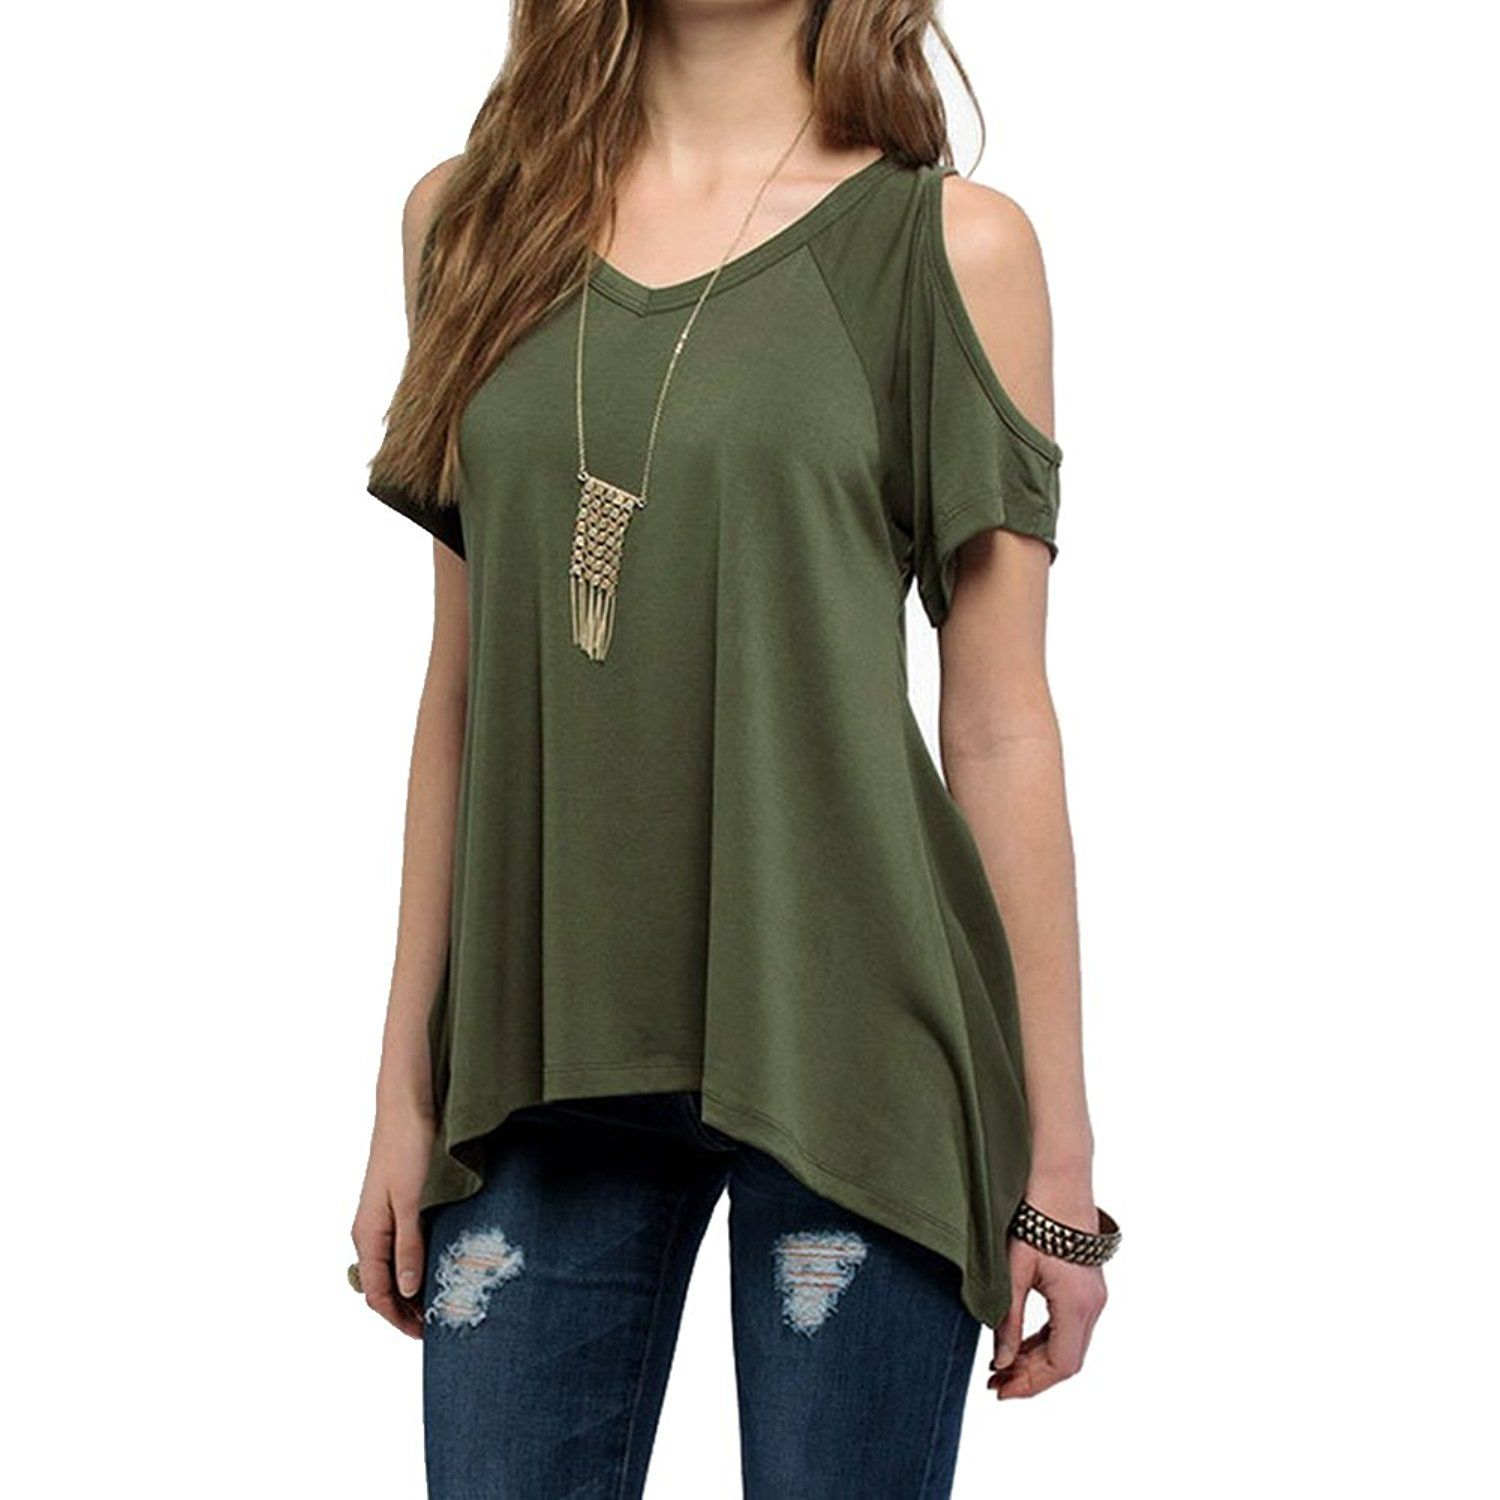 ebdf9ff94e7d41 Fashion Story Women Casual T-shirt Short Sleeve Top Crew Neck Loose Blouse  Bat Sleeve Tunics For Summer at Amazon Women's Clothing store: